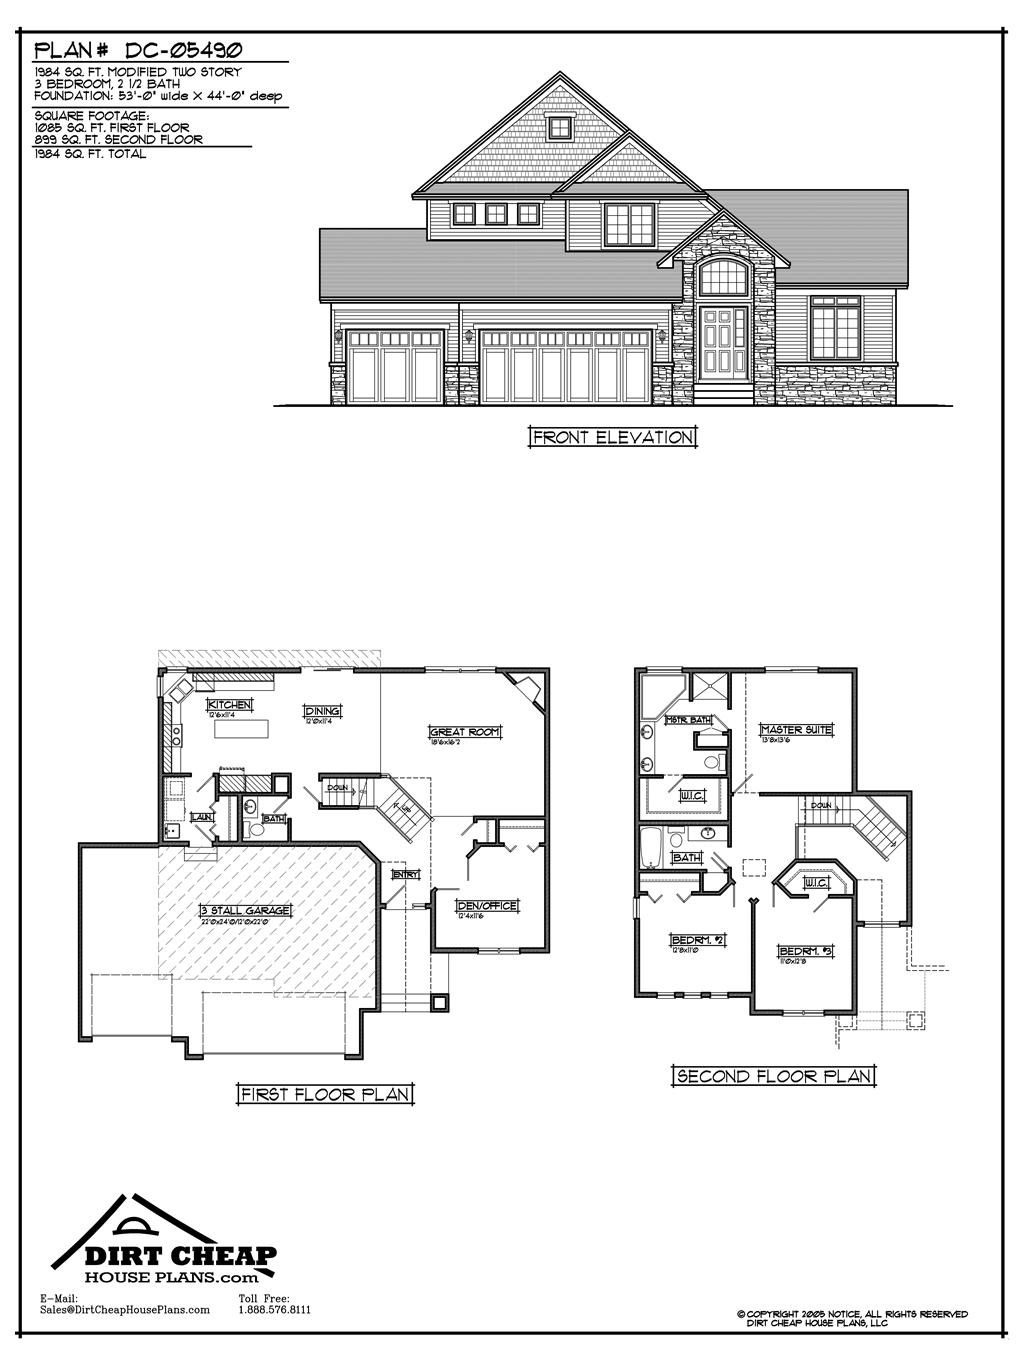 Cheap Two Story House Plans Lovely Unique Cheap Home Plans 6 Two Story House Plans with